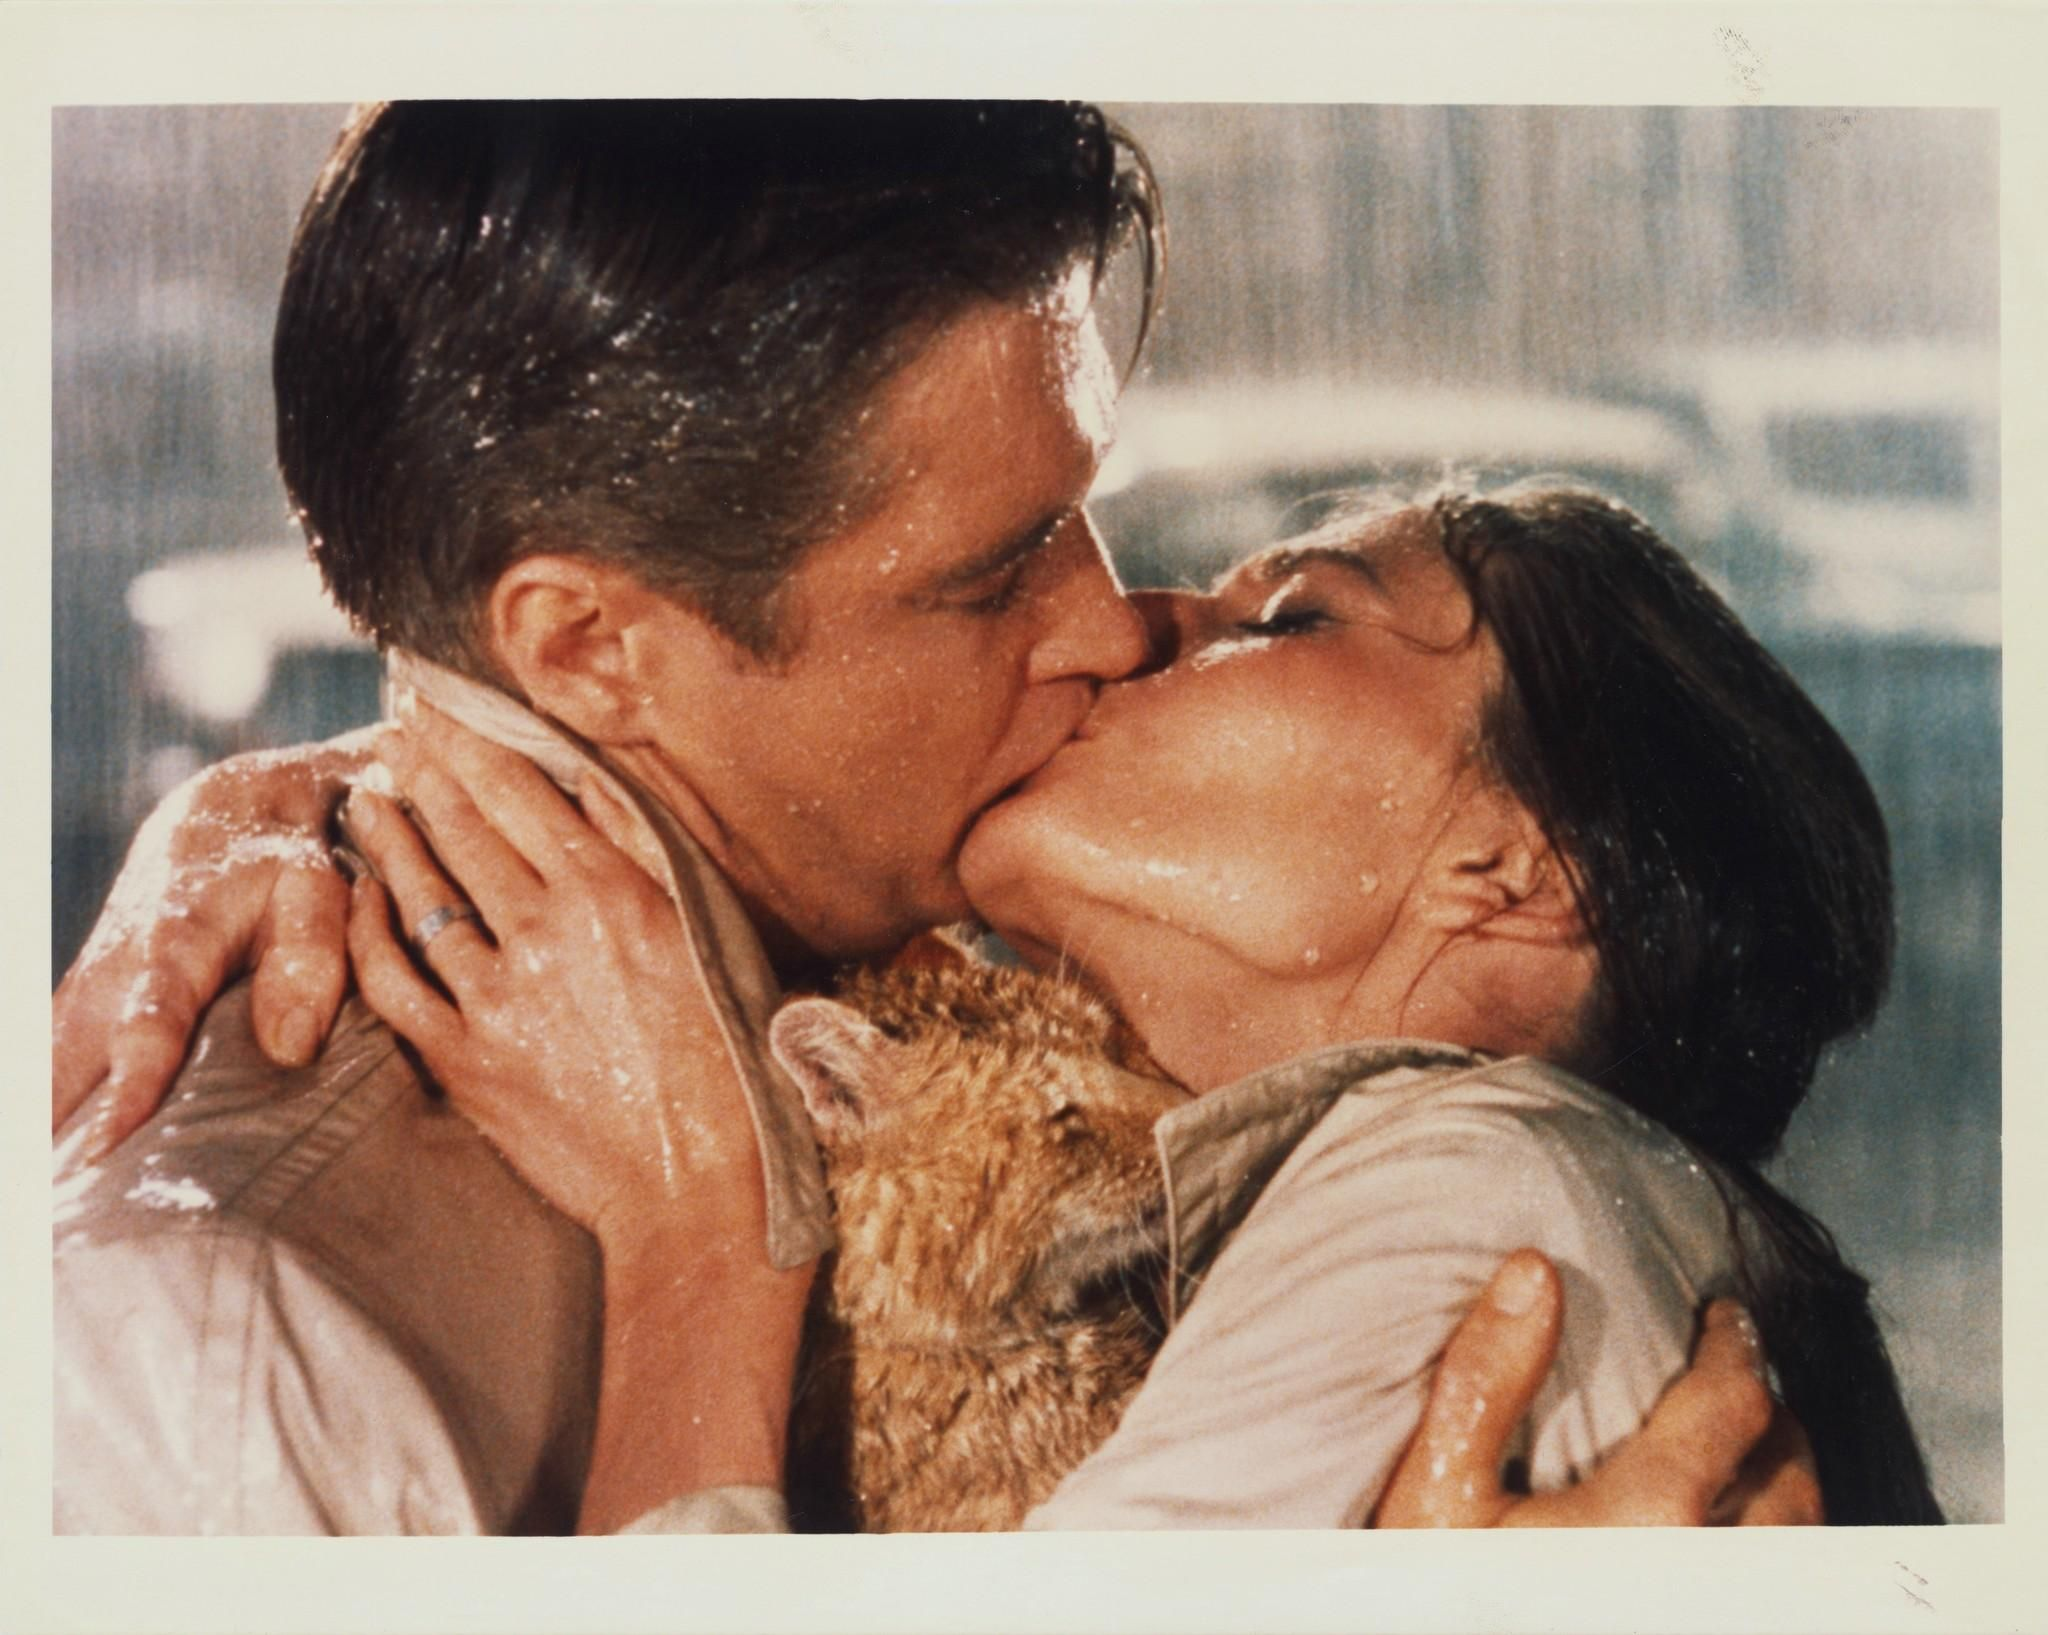 Paul and Holly (and Cat) - George Peppard and Audrey Hepburn - Breakfast at  Tiffany's | Movie kisses, George peppard, Breakfast at tiffany's movie